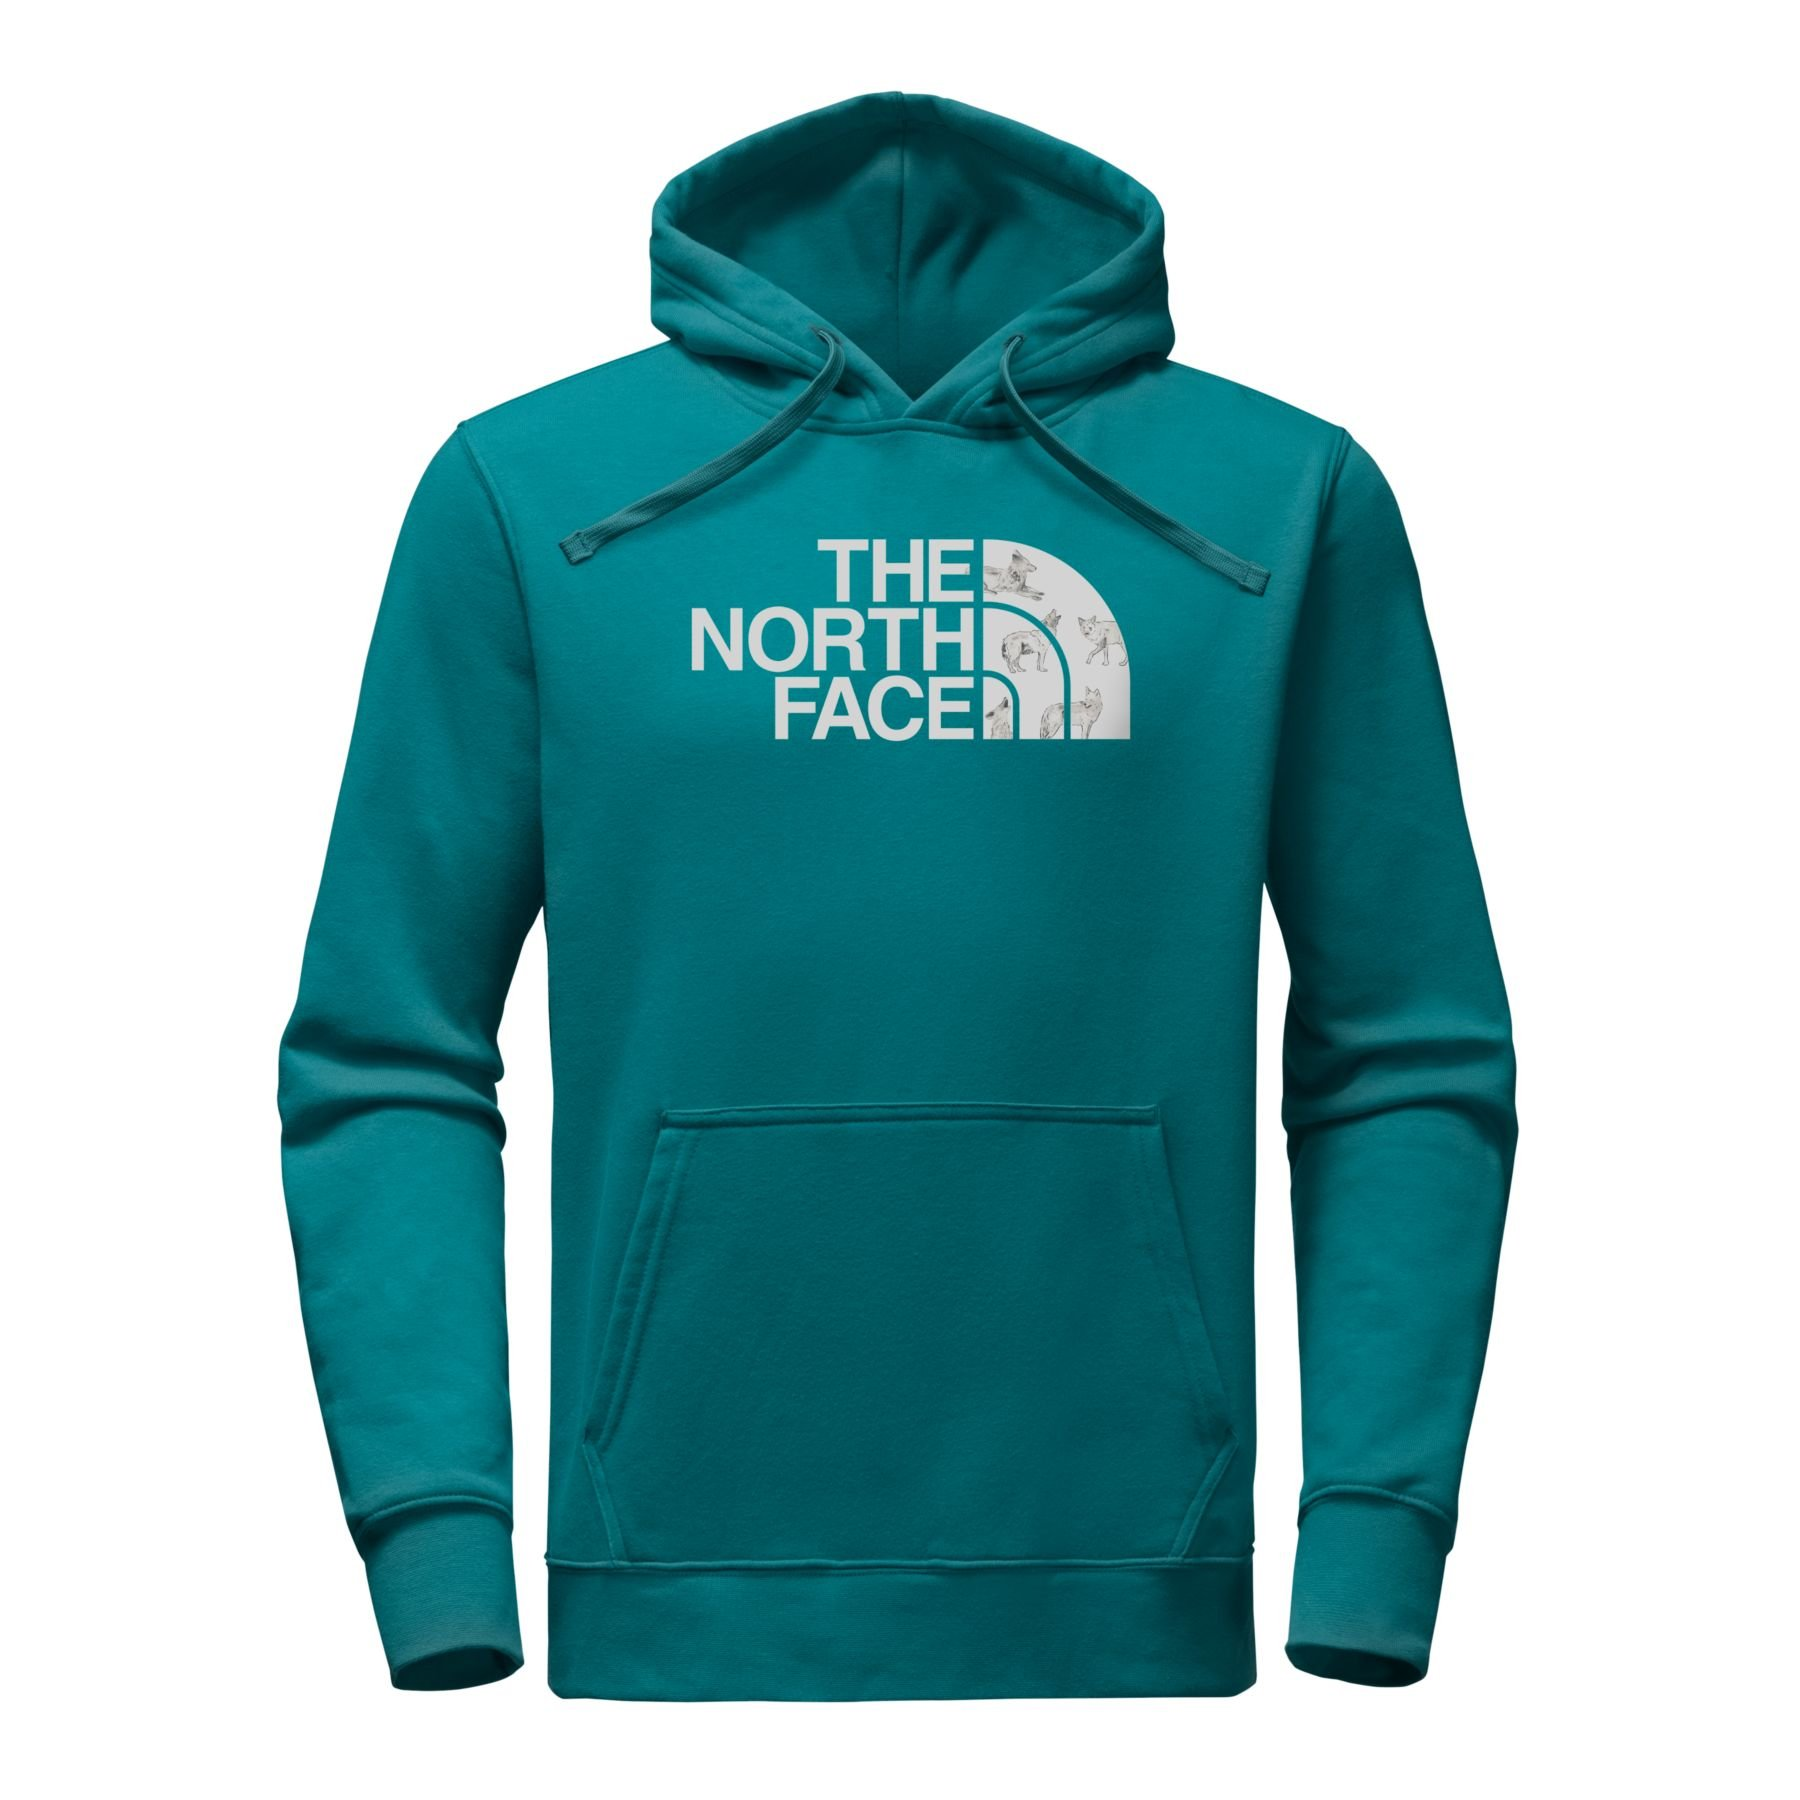 The North Face Men's Half Dome Hoodie - Blue Coral & High Rise Grey Coyotes Print - L